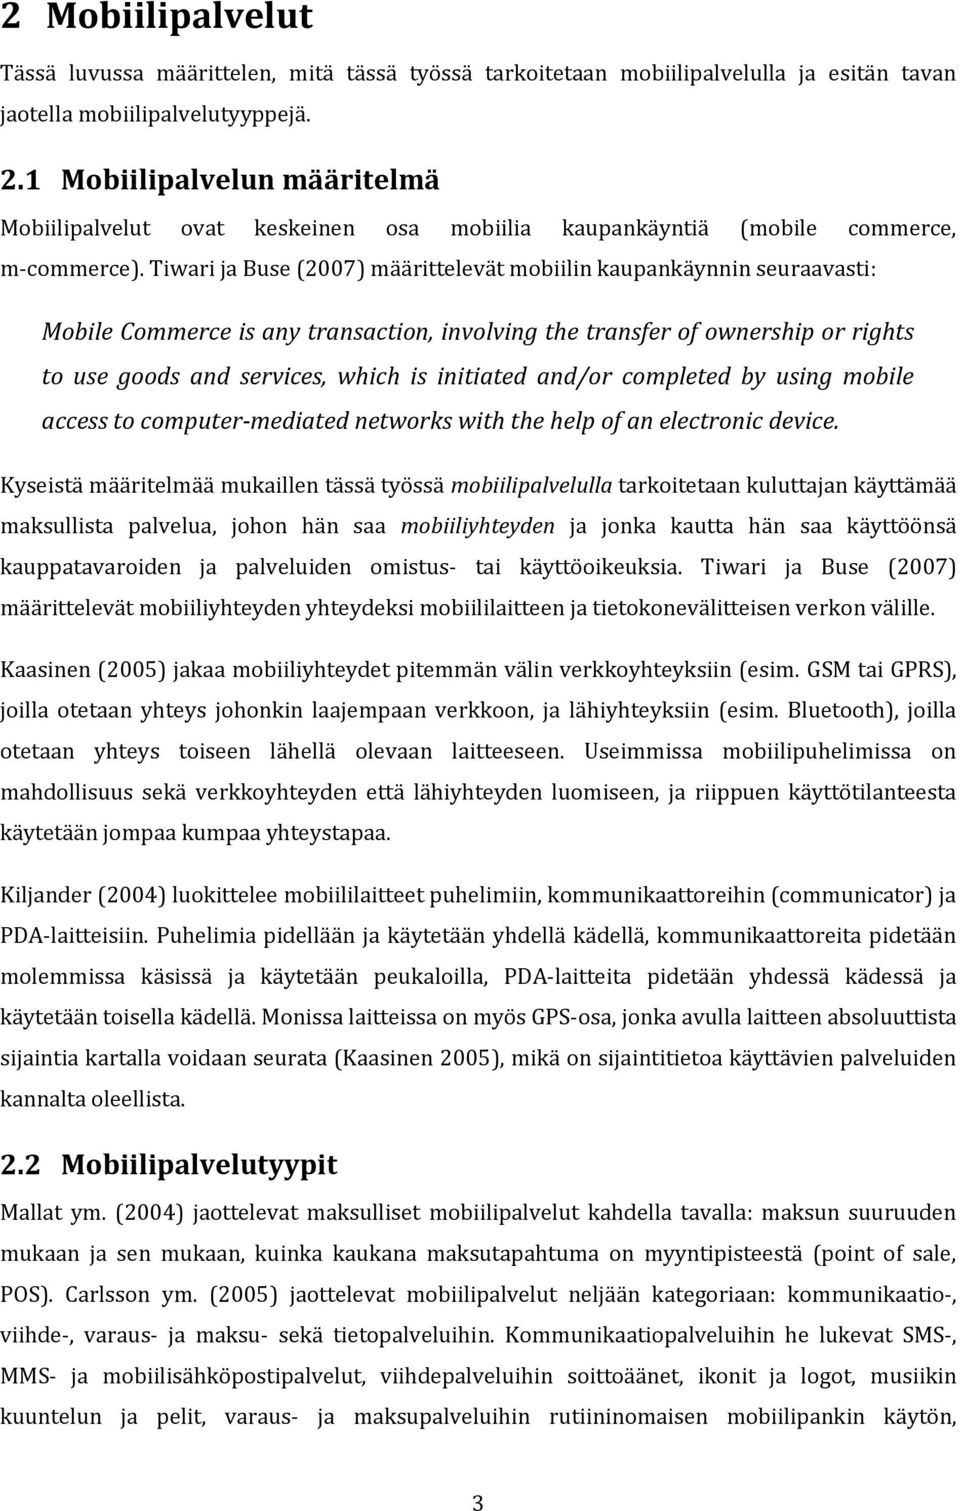 Tiwari ja Buse (2007) määrittelevät mobiilin kaupankäynnin seuraavasti: Mobile Commerce is any transaction, involving the transfer of ownership or rights to use goods and services, which is initiated